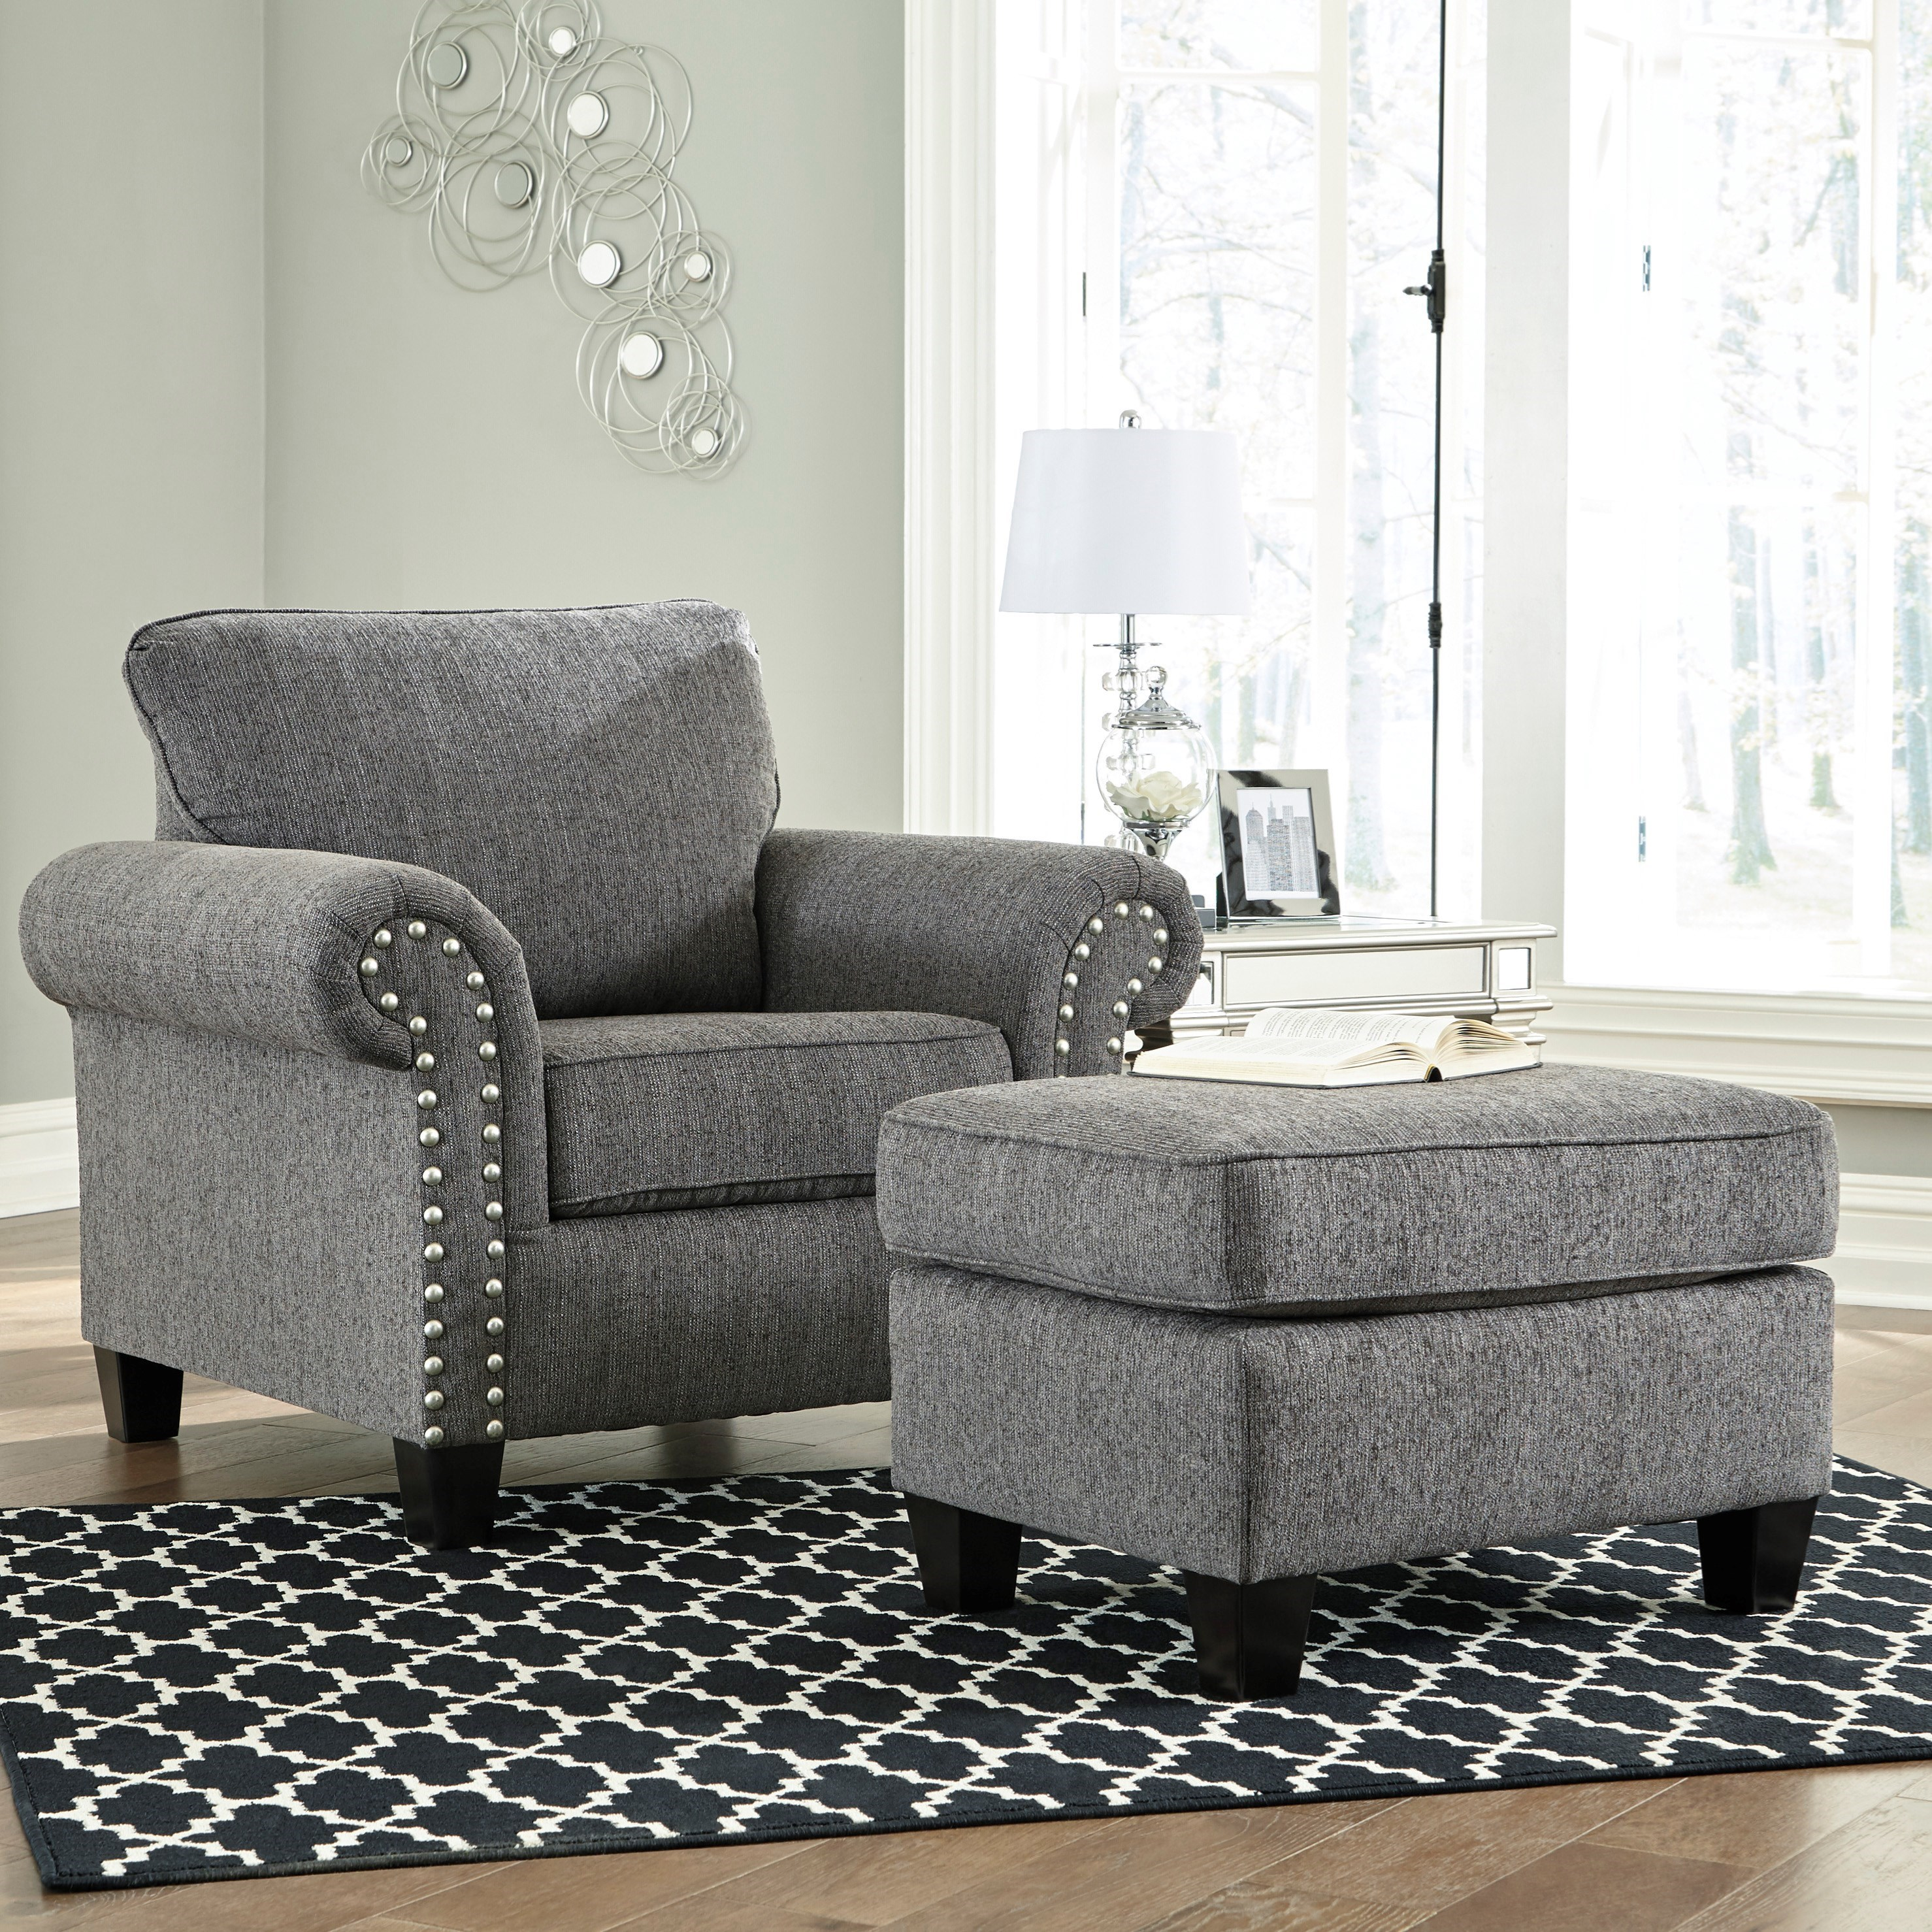 Contemporary Chair and Ottoman with Nail Head Trim